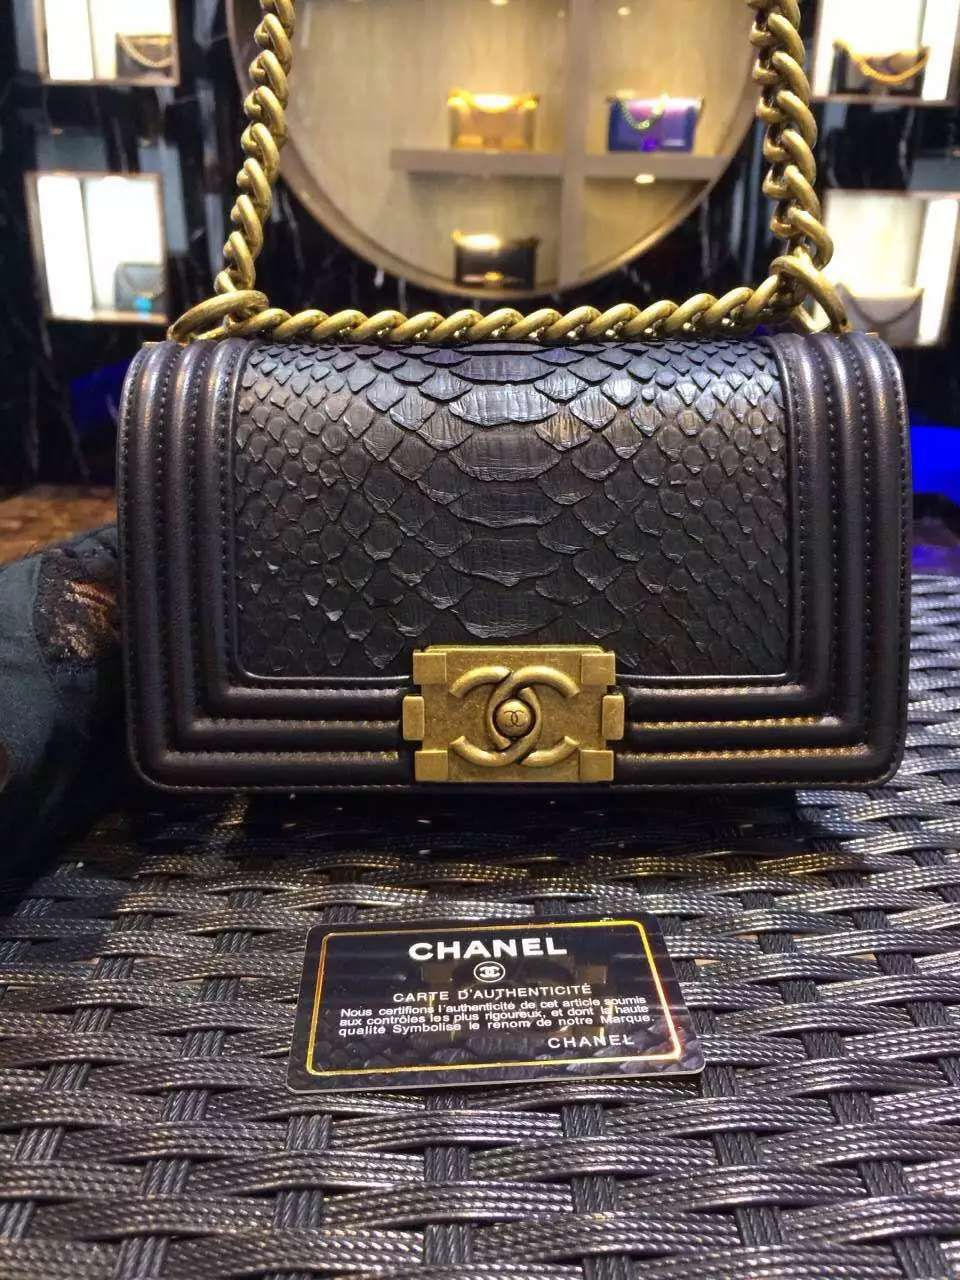 chanel Bag, ID : 39250(FORSALE:a@yybags.com), chanel leather handbags sale, us chanel, chanel dresses online shop, chanel purse online, chanel silver handbags, chanel shop online europe, chanel company information, chanel company information, chanel clutch wallet, chanel 2.55 handbag, chanel accessories shop online, chanel travel handbags #chanelBag #chanel #chanel #tignanello #handbags